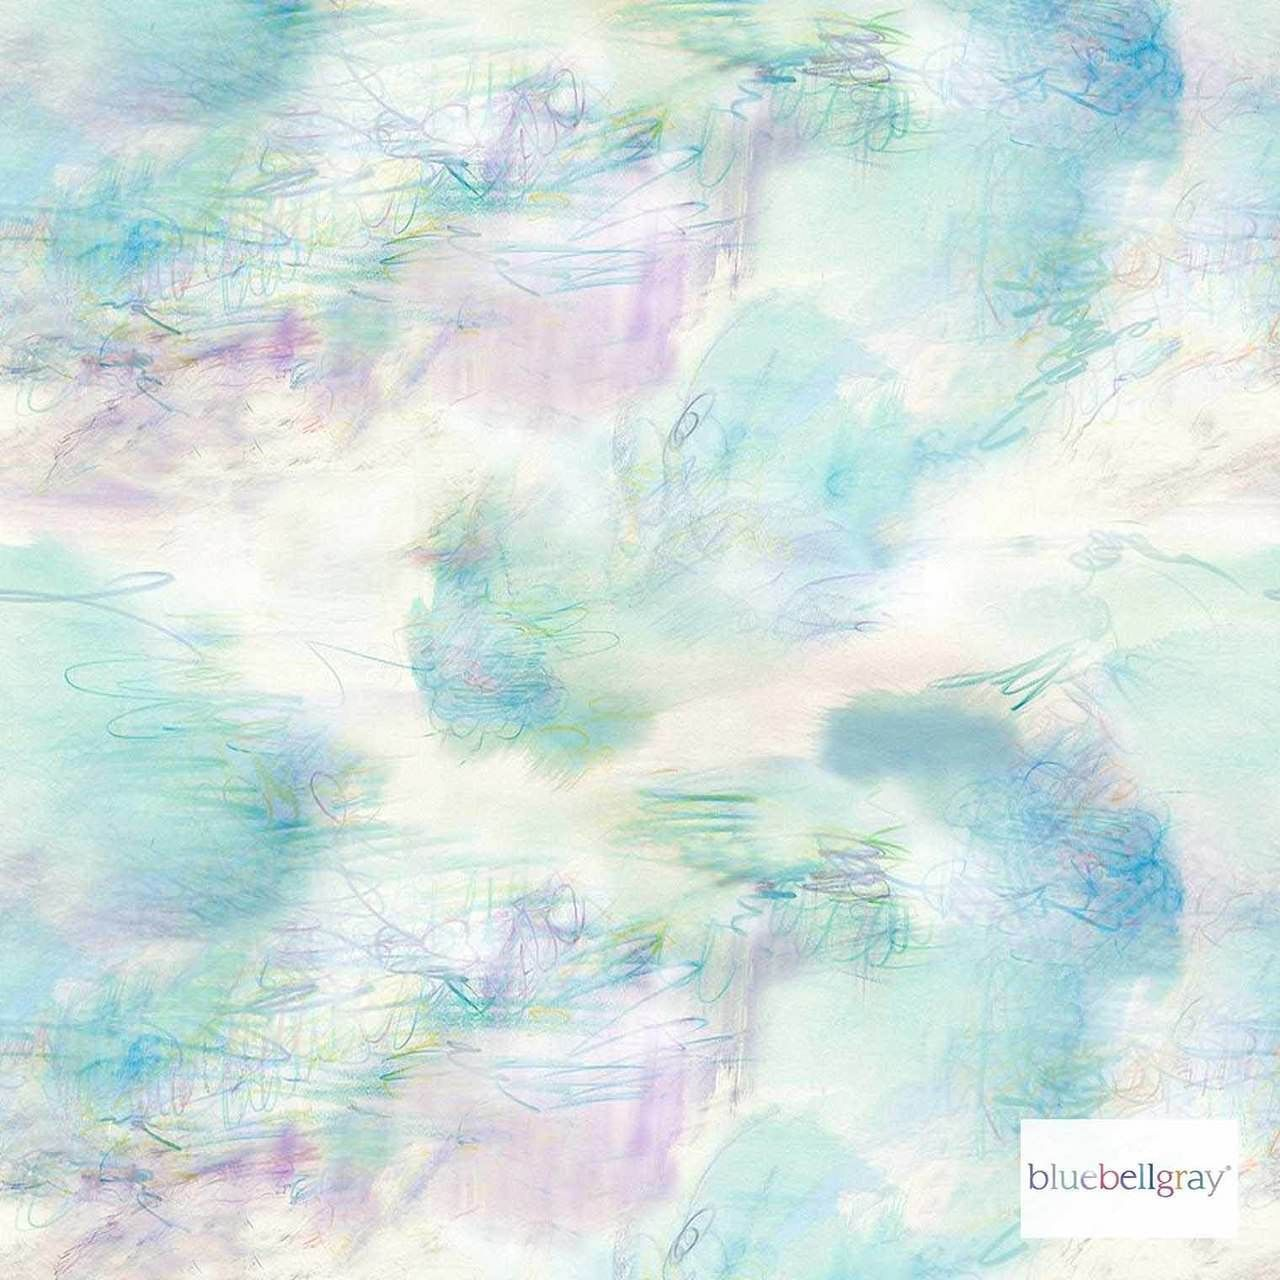 Wallpapers Bluebellgray Impressionist Wallpaper Pastel With